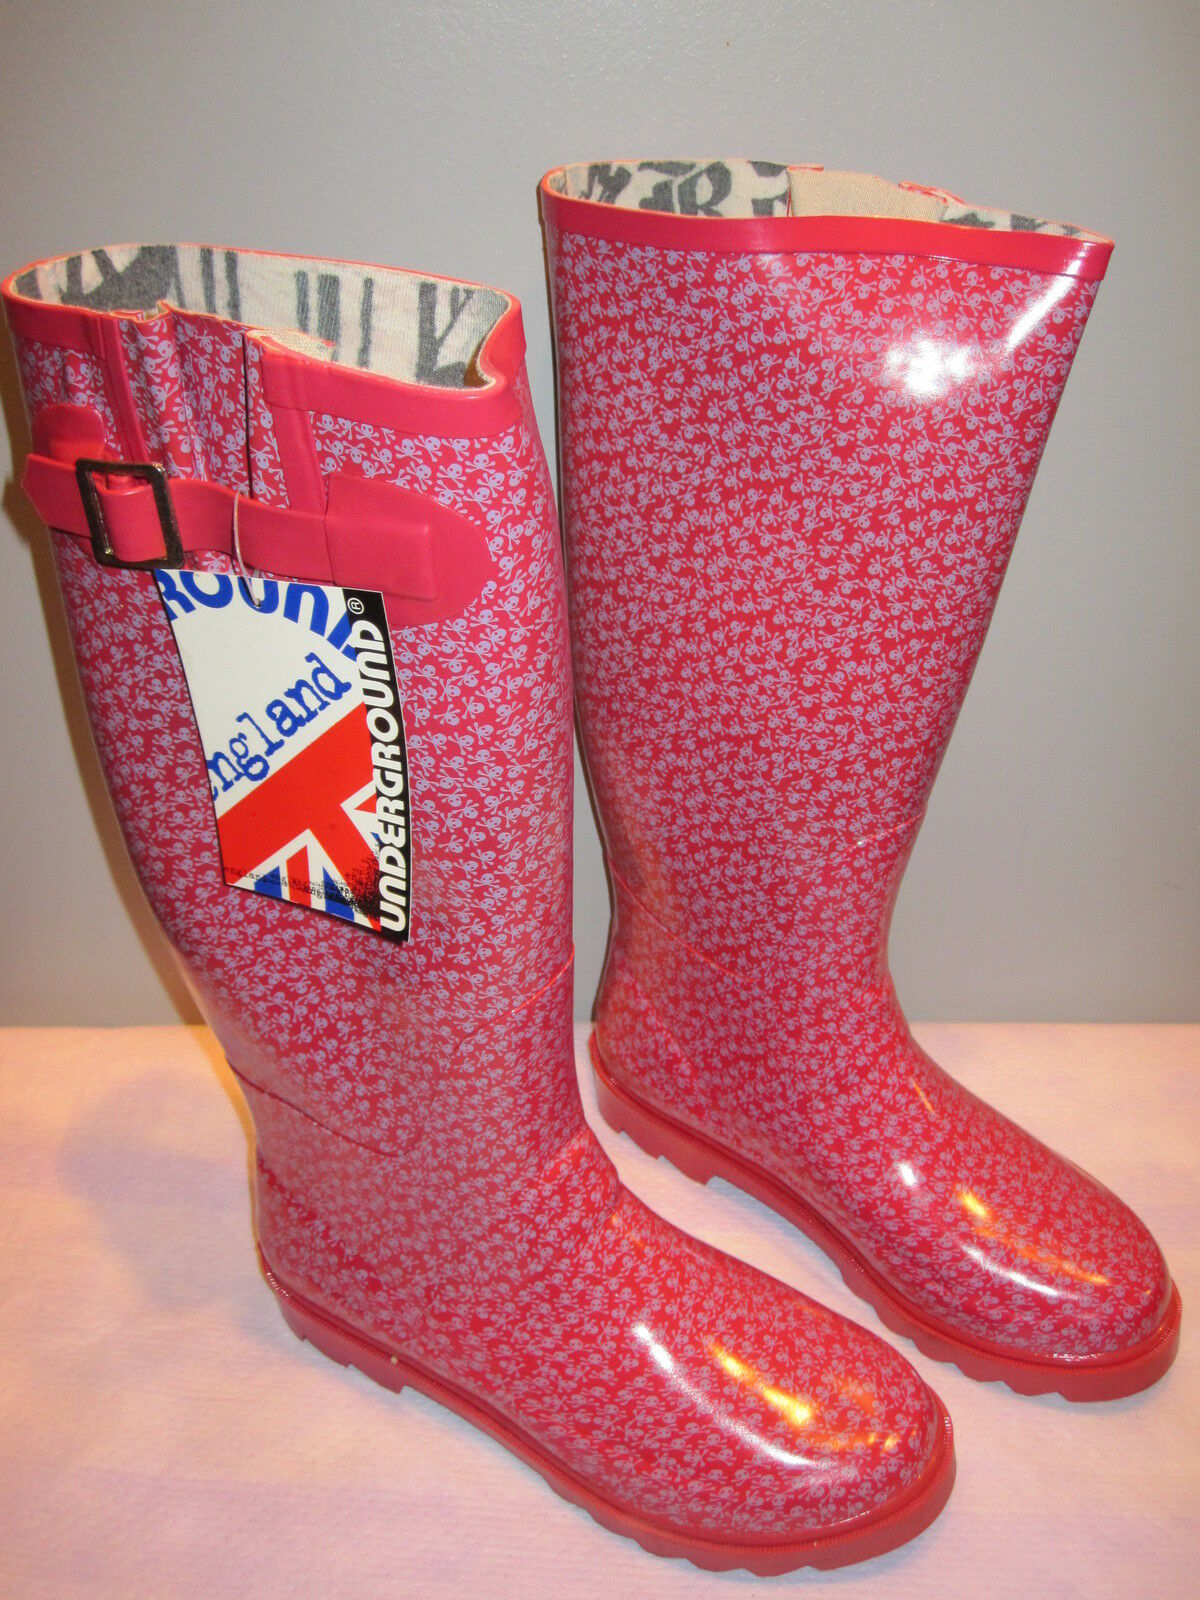 NOS UNDERGROUND ENGLAND WELLiNGTON WELLiE RUBBER UK5 Stiefel PiNK JOLLY ROGER UK5 RUBBER US7 3146e4